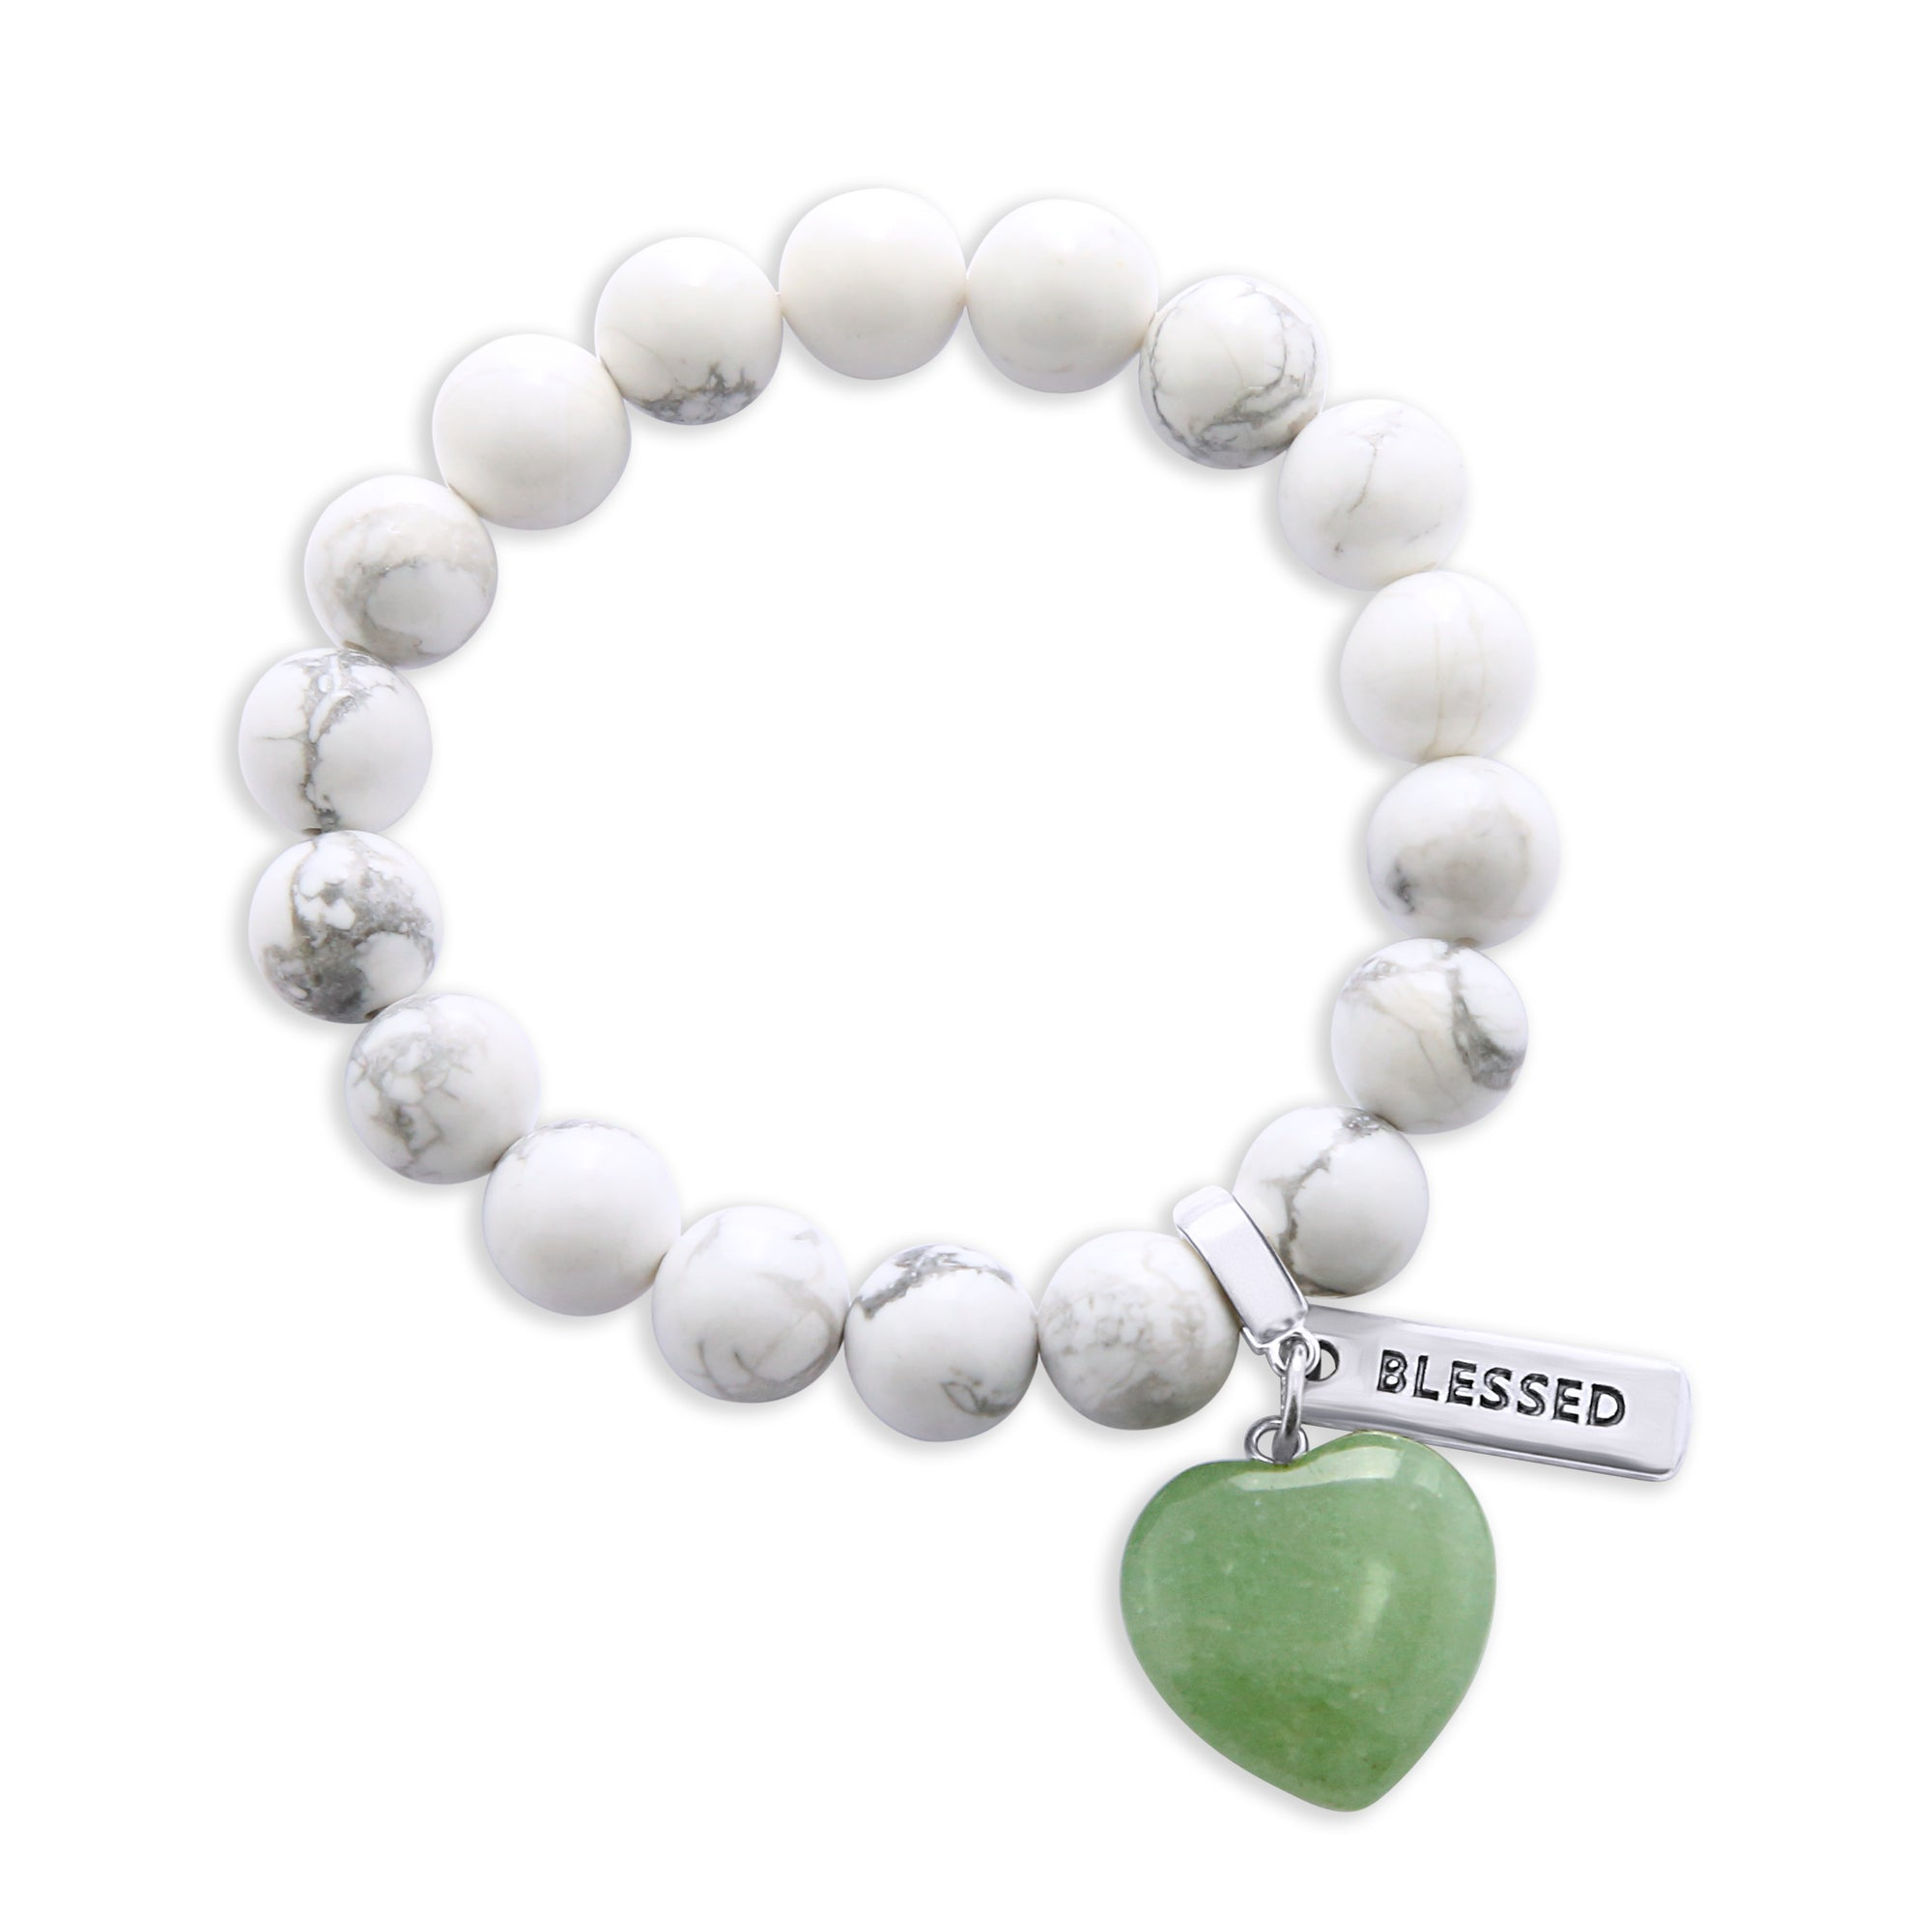 SWEETHEART Bracelet - 10mm WHITE MARBLE with DUSTY GREEN ADVENTURINE heart charm & Word Charm